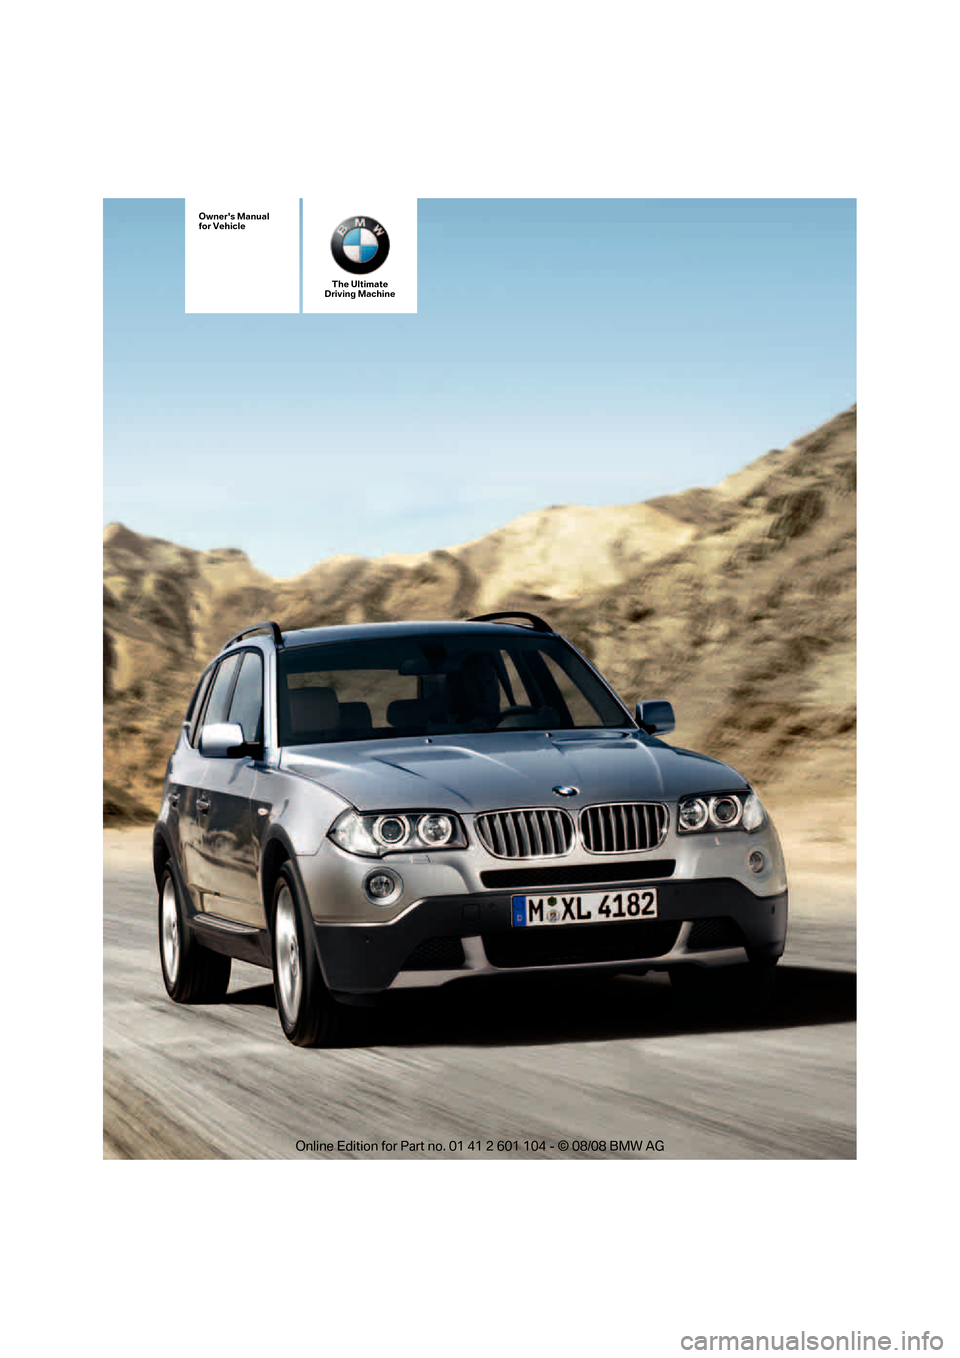 BMW X3 XDRIVE 30I 2009 E83 Owners Manual, Page 1